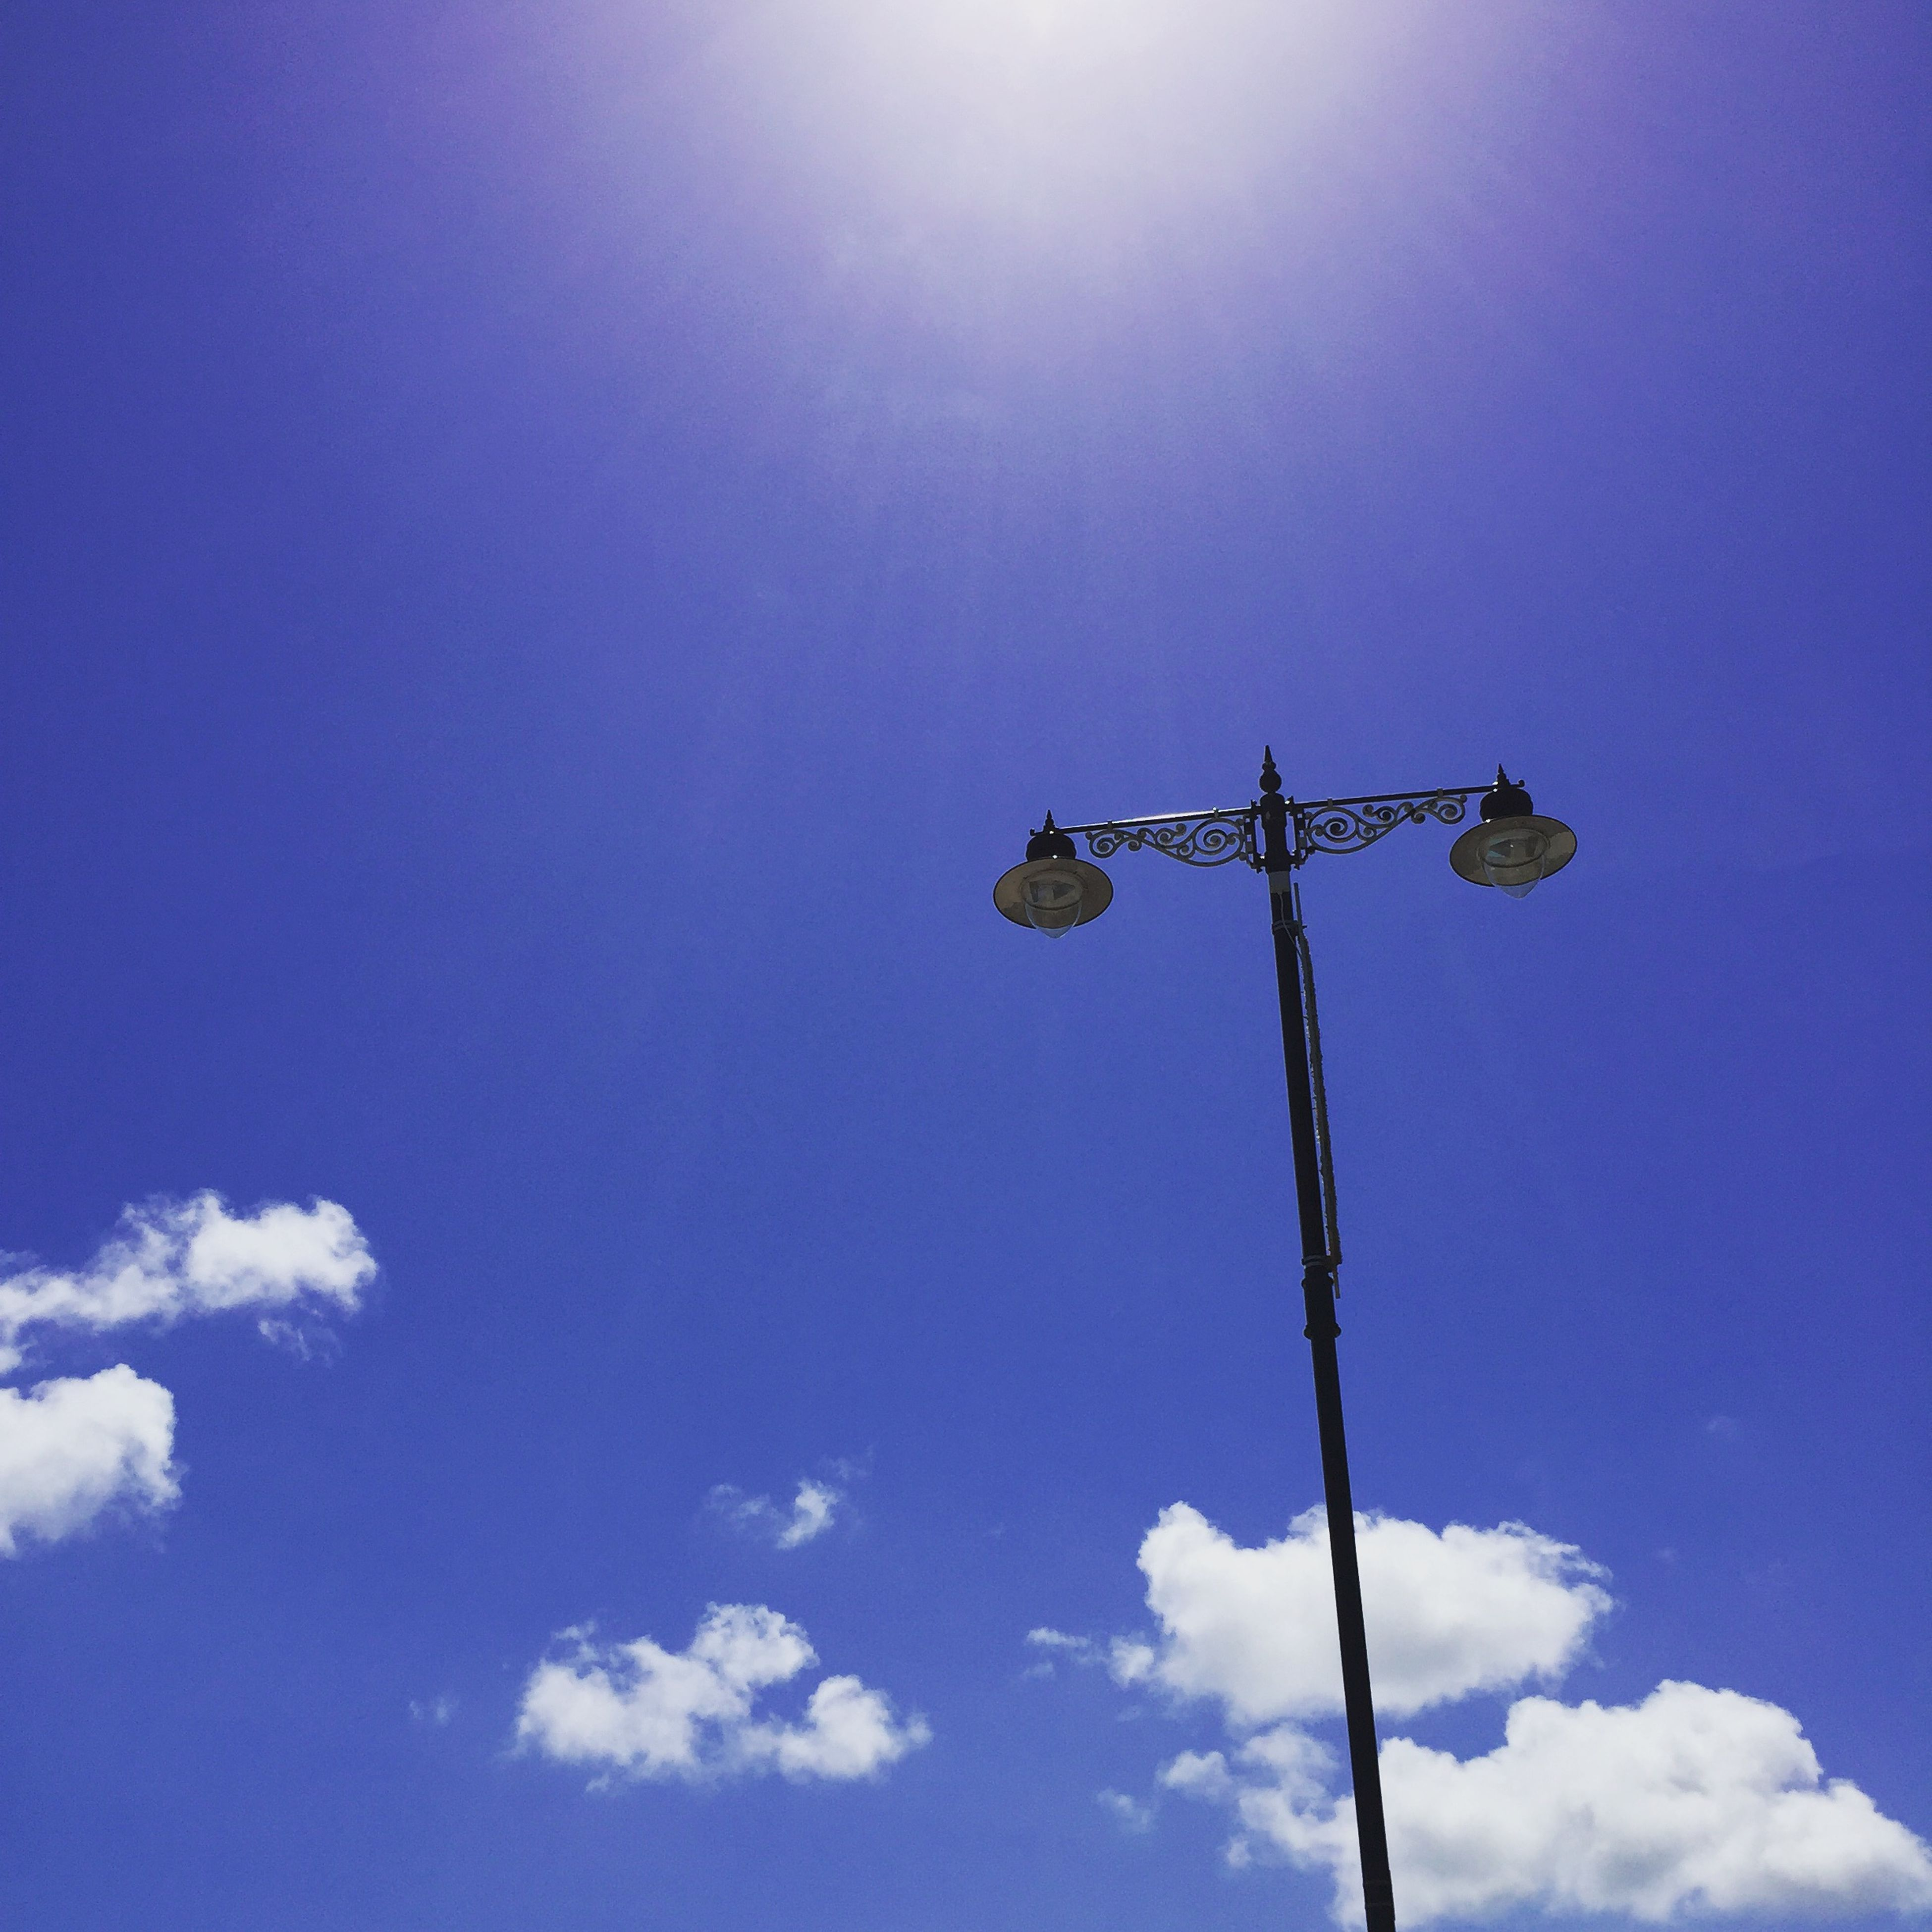 low angle view, blue, street light, sky, lighting equipment, pole, nature, clear sky, copy space, sunlight, day, no people, sun, outdoors, high section, electricity, silhouette, cloud - sky, beauty in nature, electric light